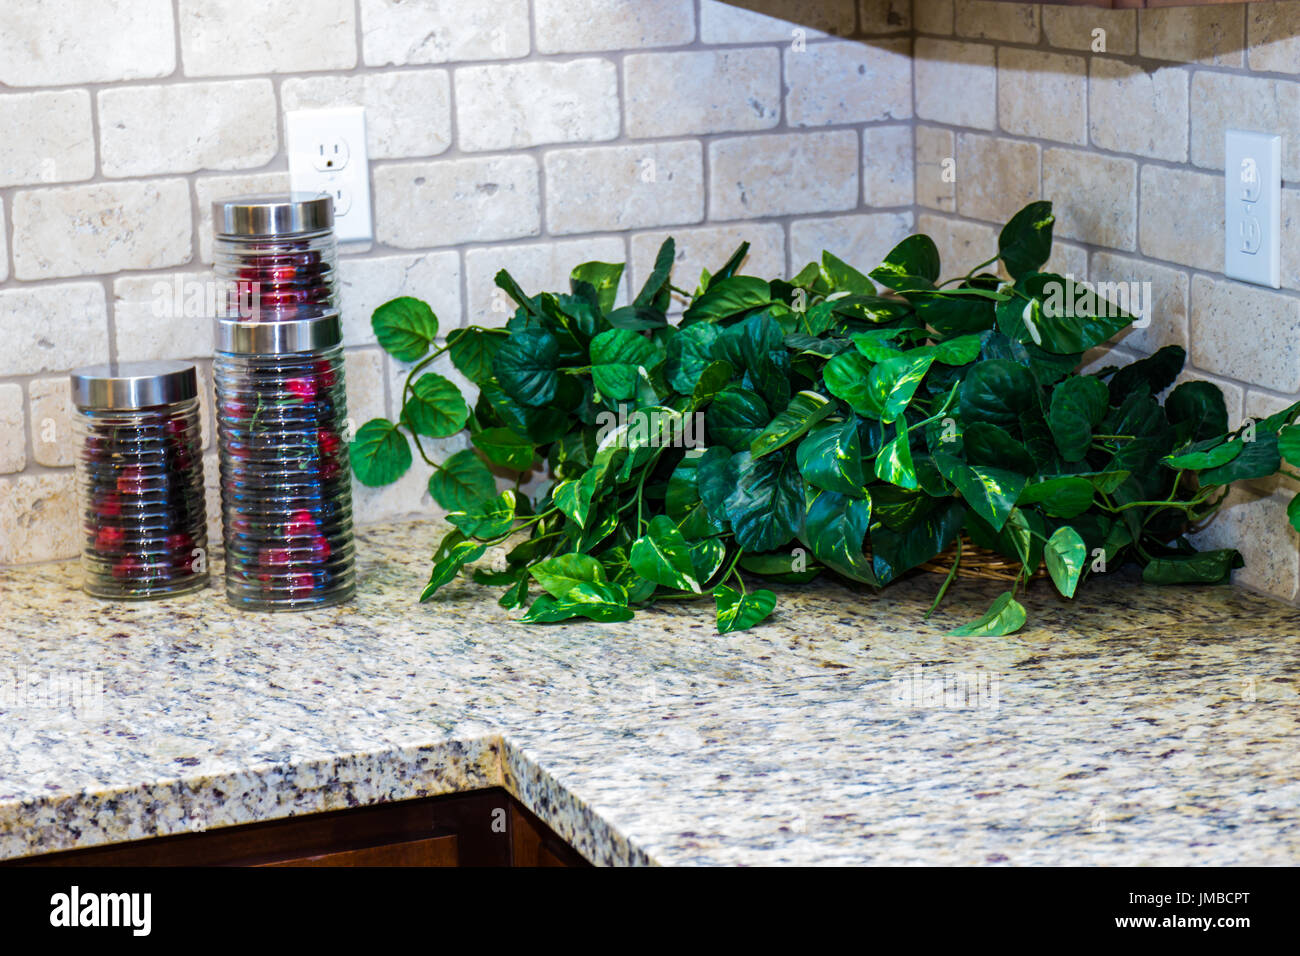 Modern Kitchen Counter With Plant & Canisters Stock Photo ...